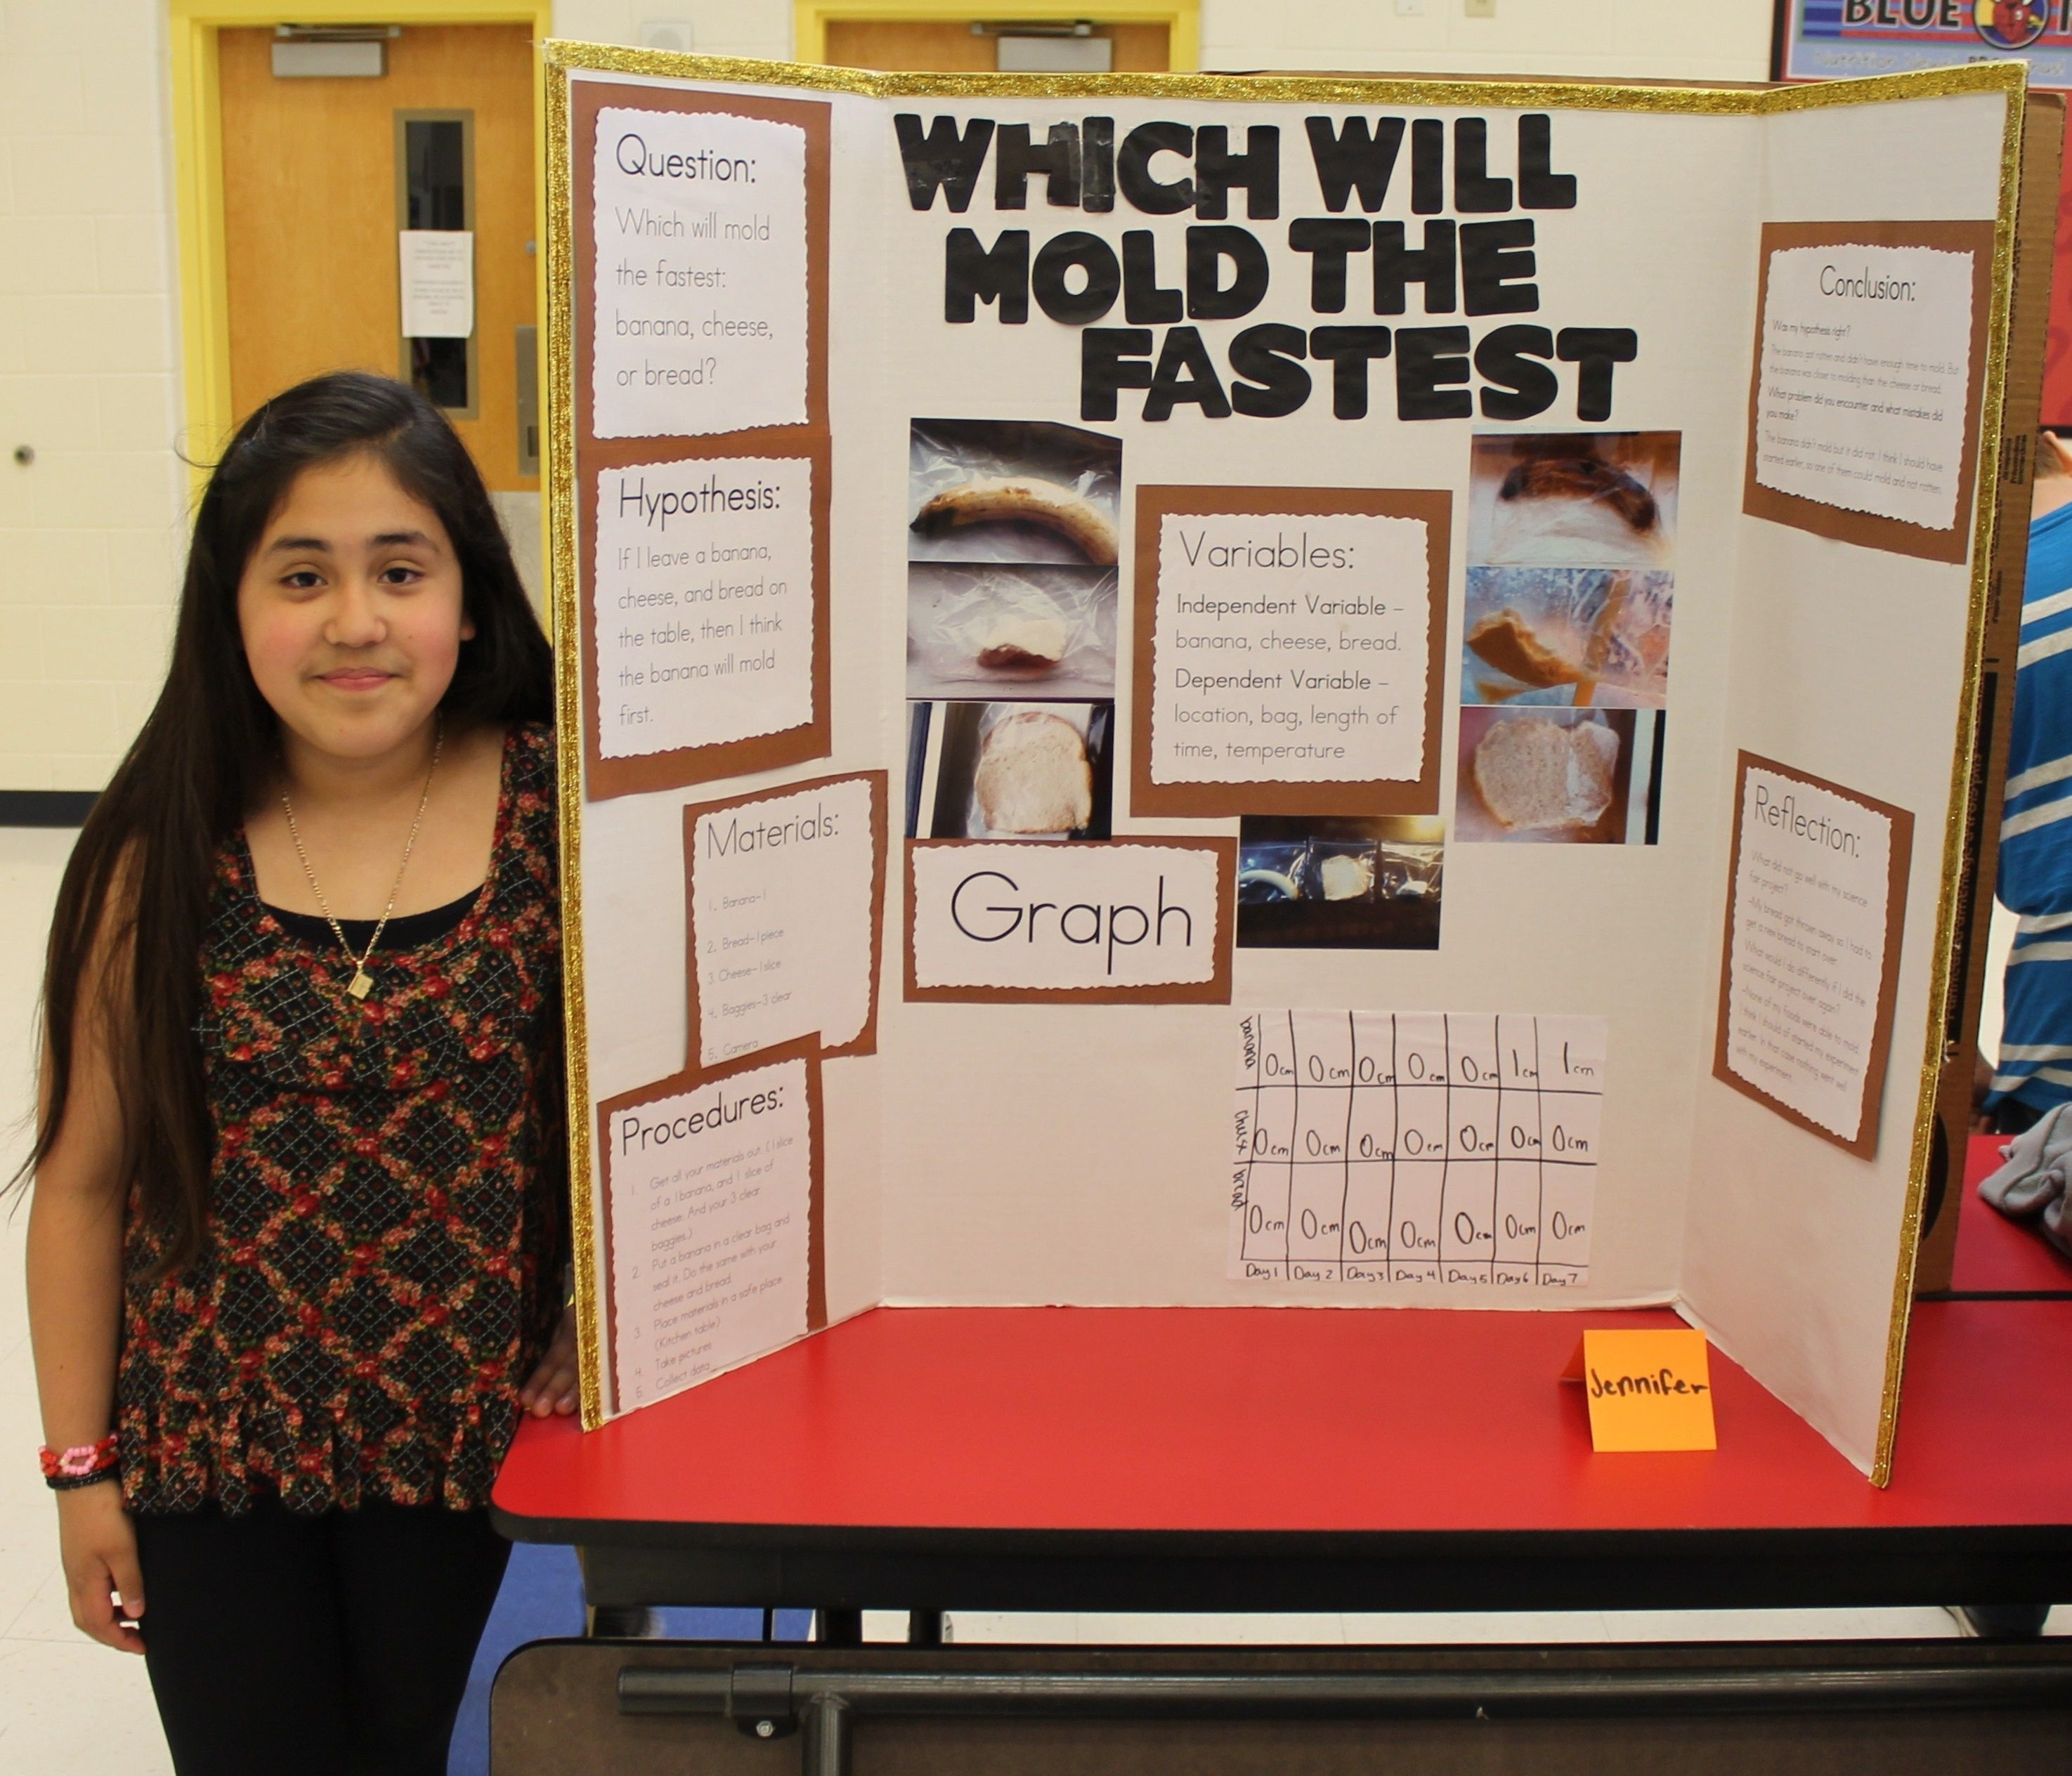 10 Attractive Third Grade Science Project Ideas easy science fair projects for 3rd grade idea google search 4